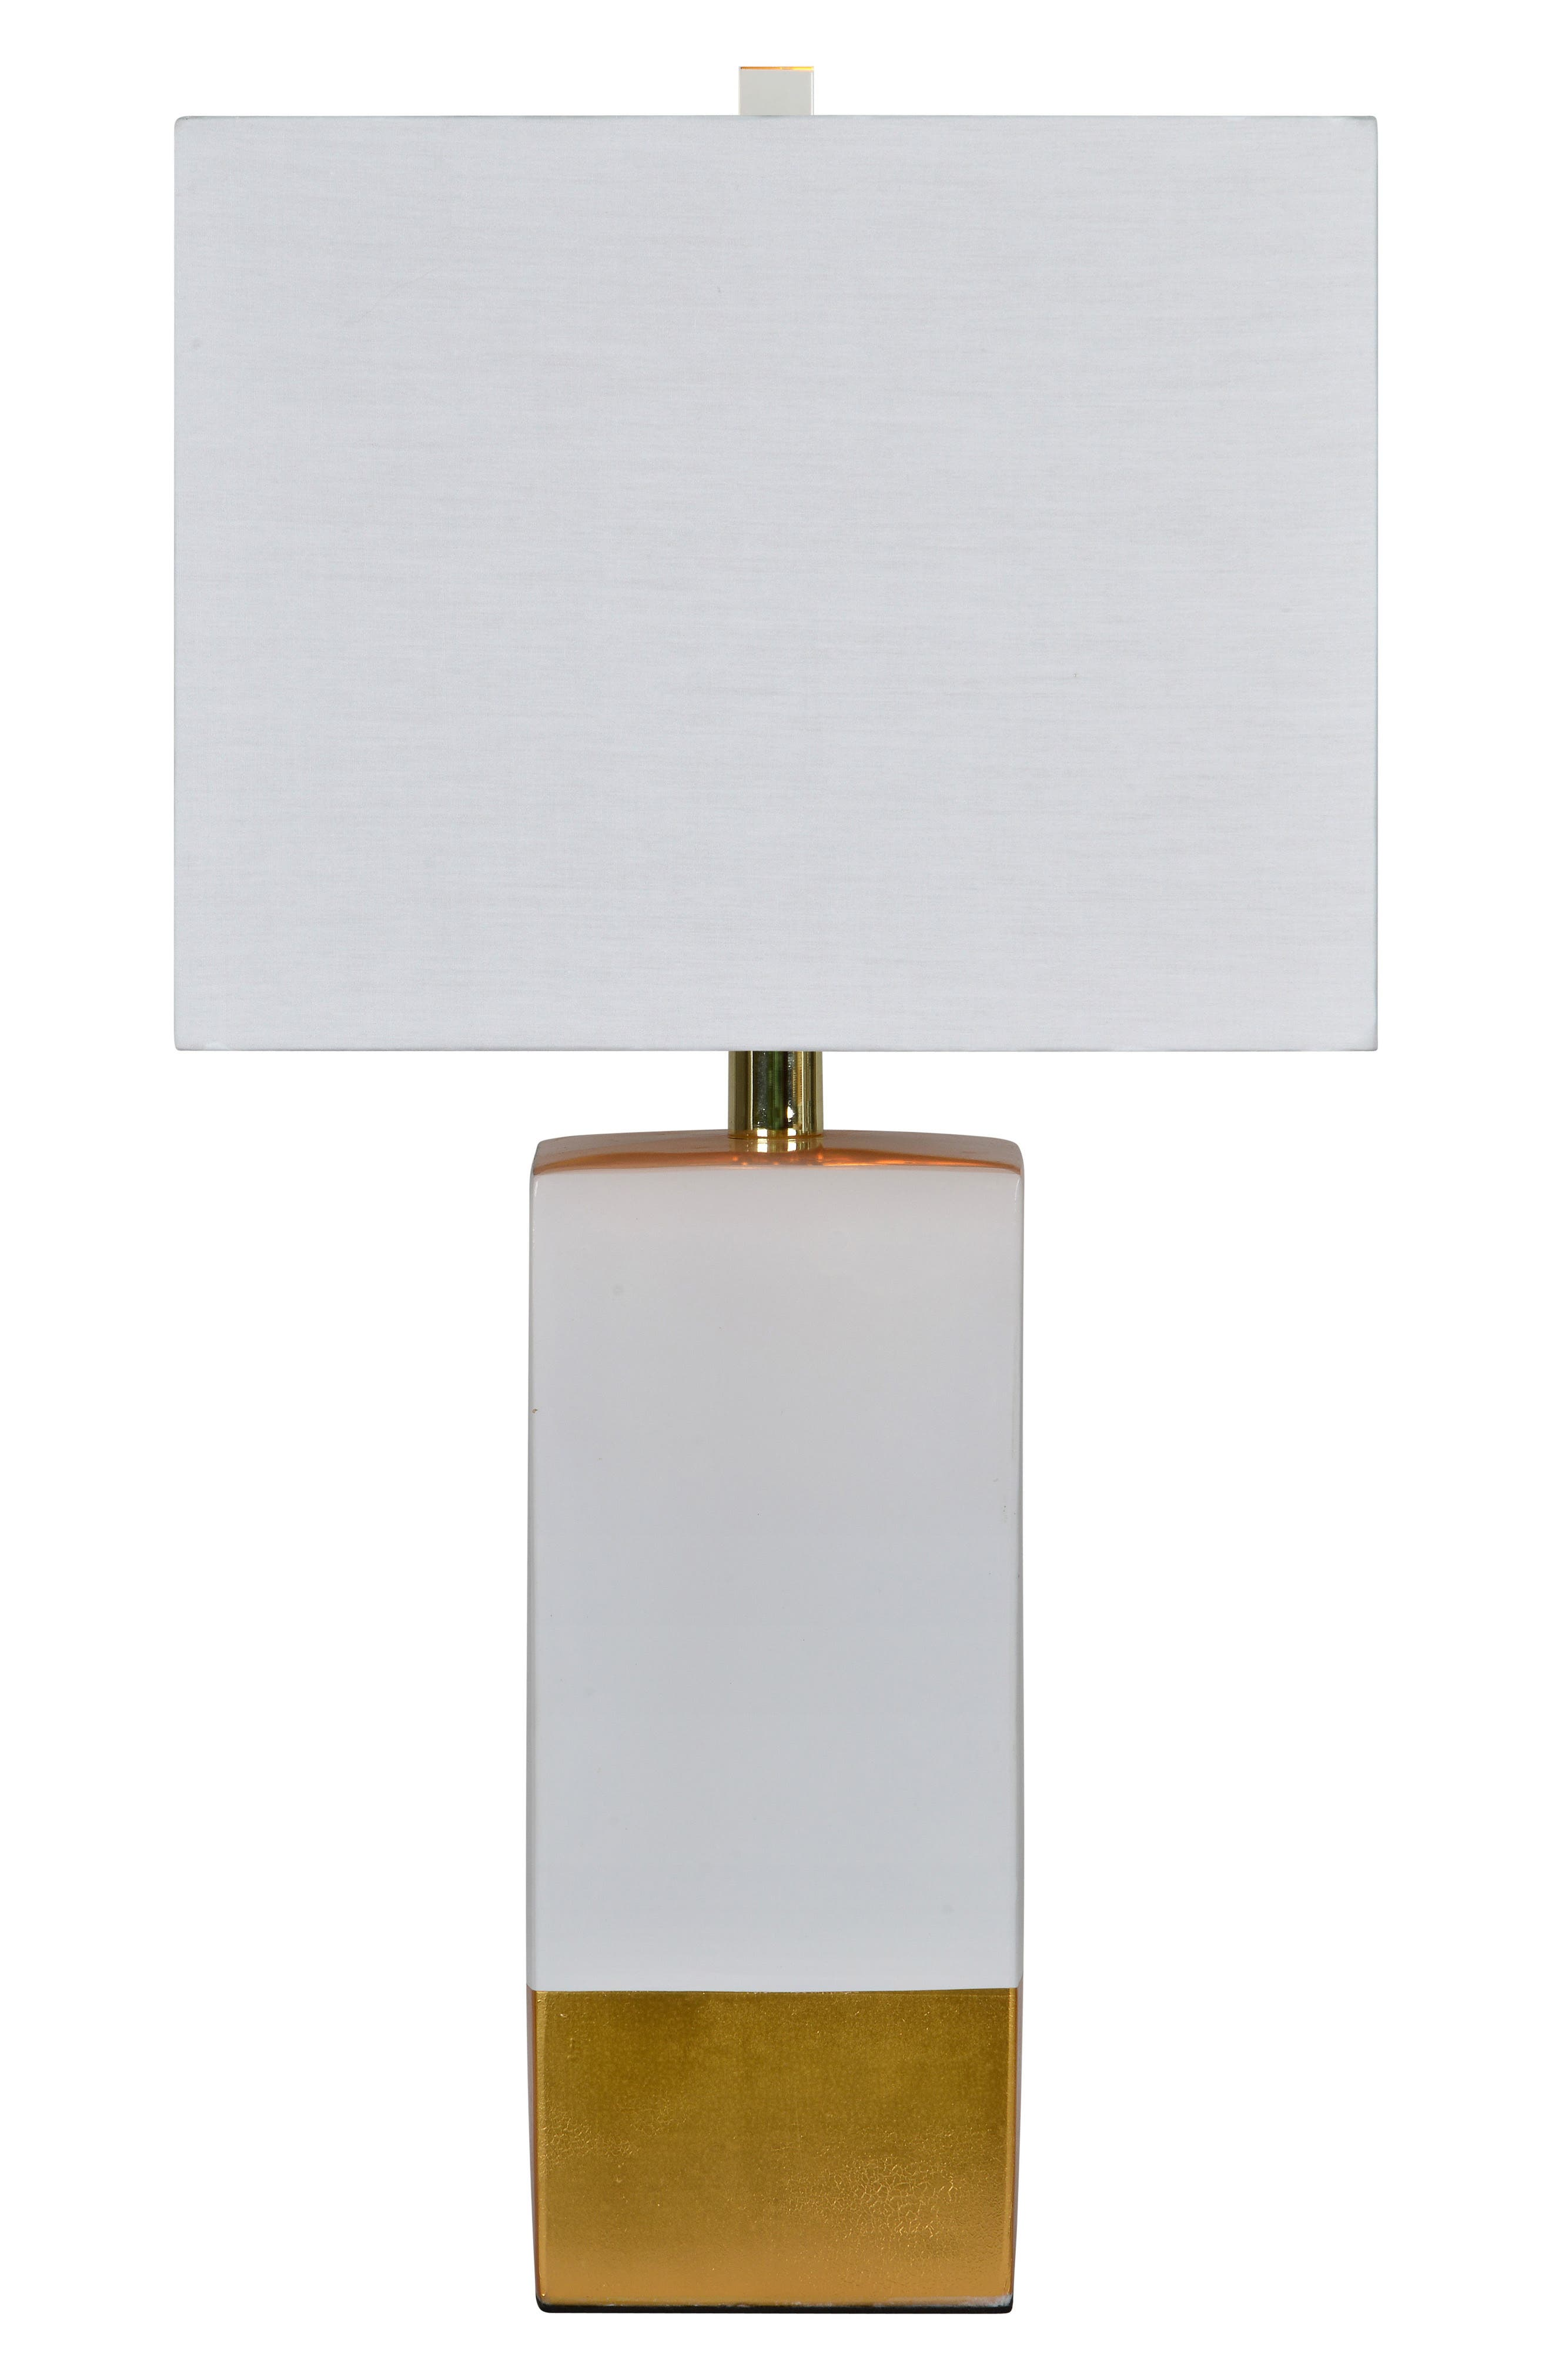 Le Smoking Table Lamp,                             Main thumbnail 1, color,                             White/ Gold